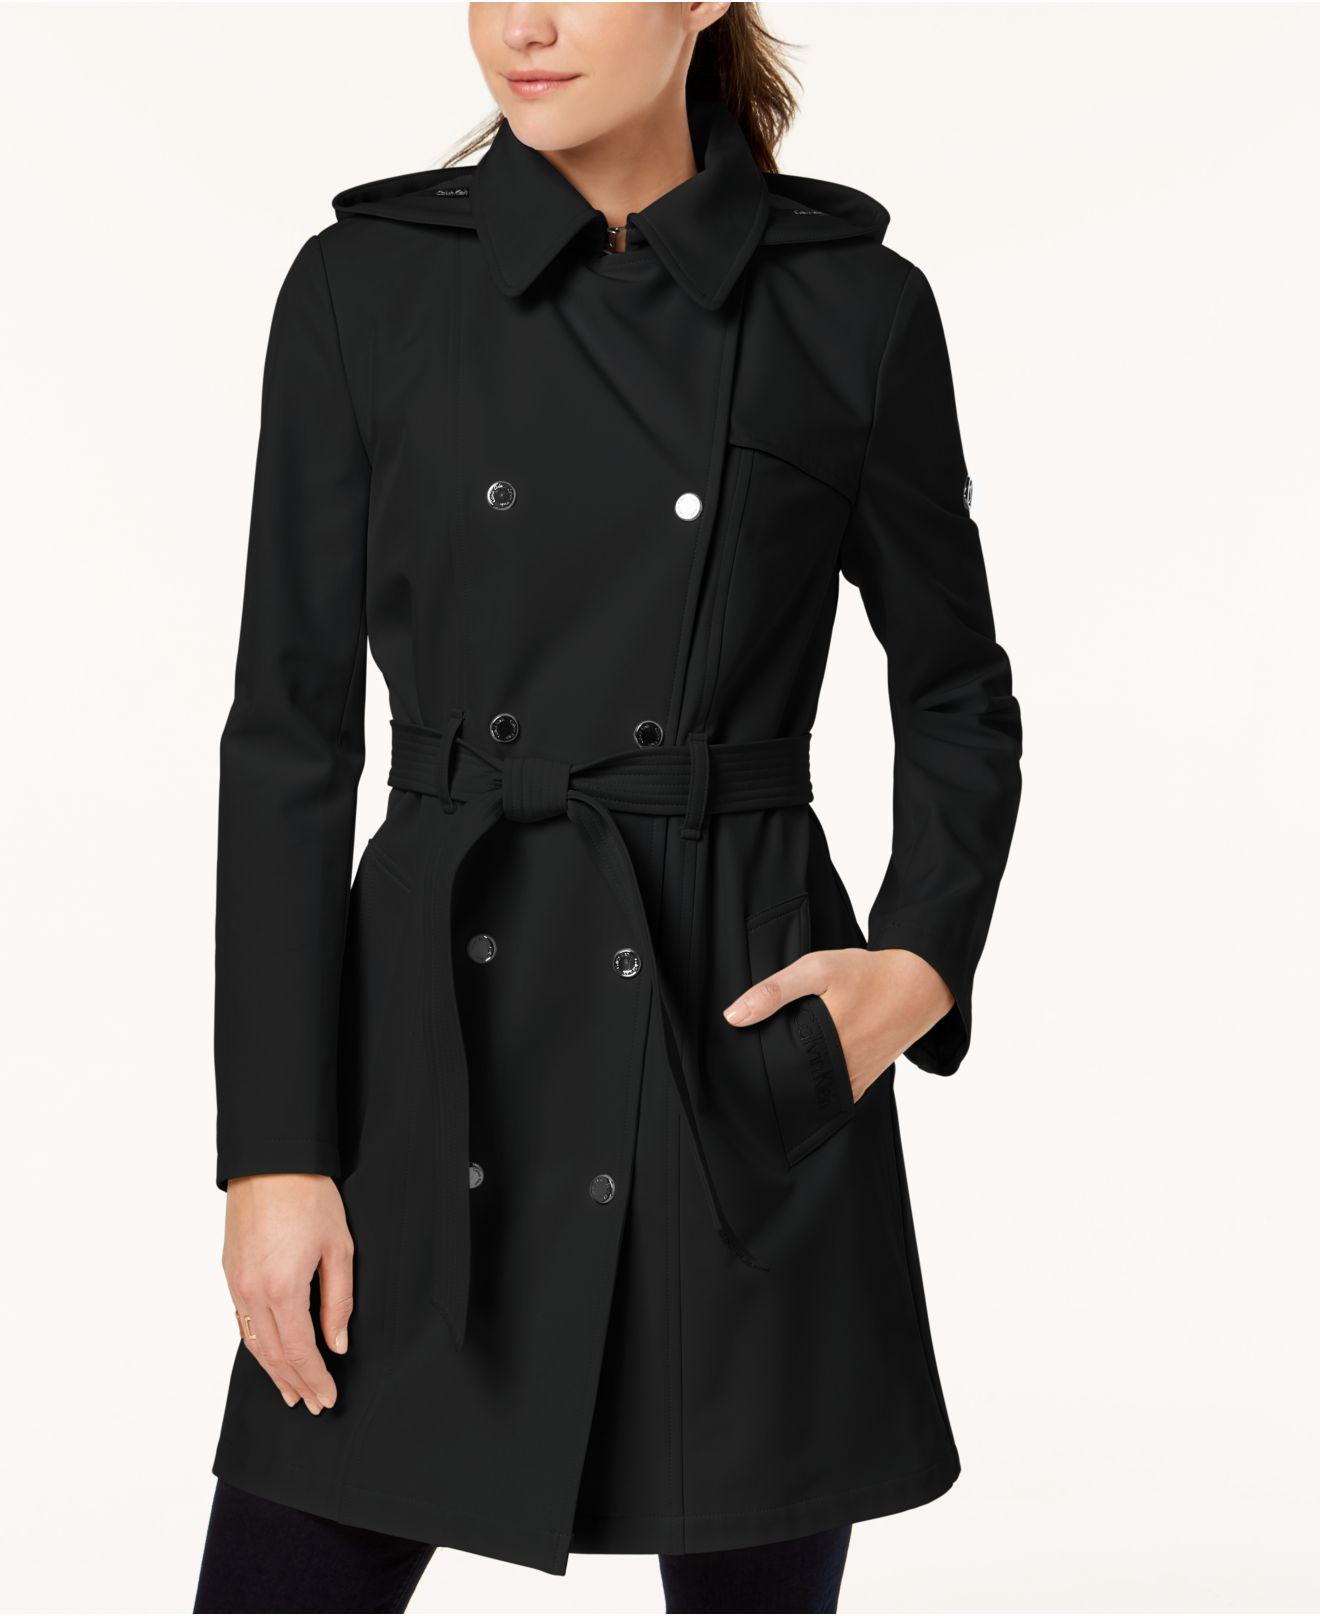 98814d36261 Lyst - Calvin Klein Hooded Double-breasted Trench Coat in Black ...